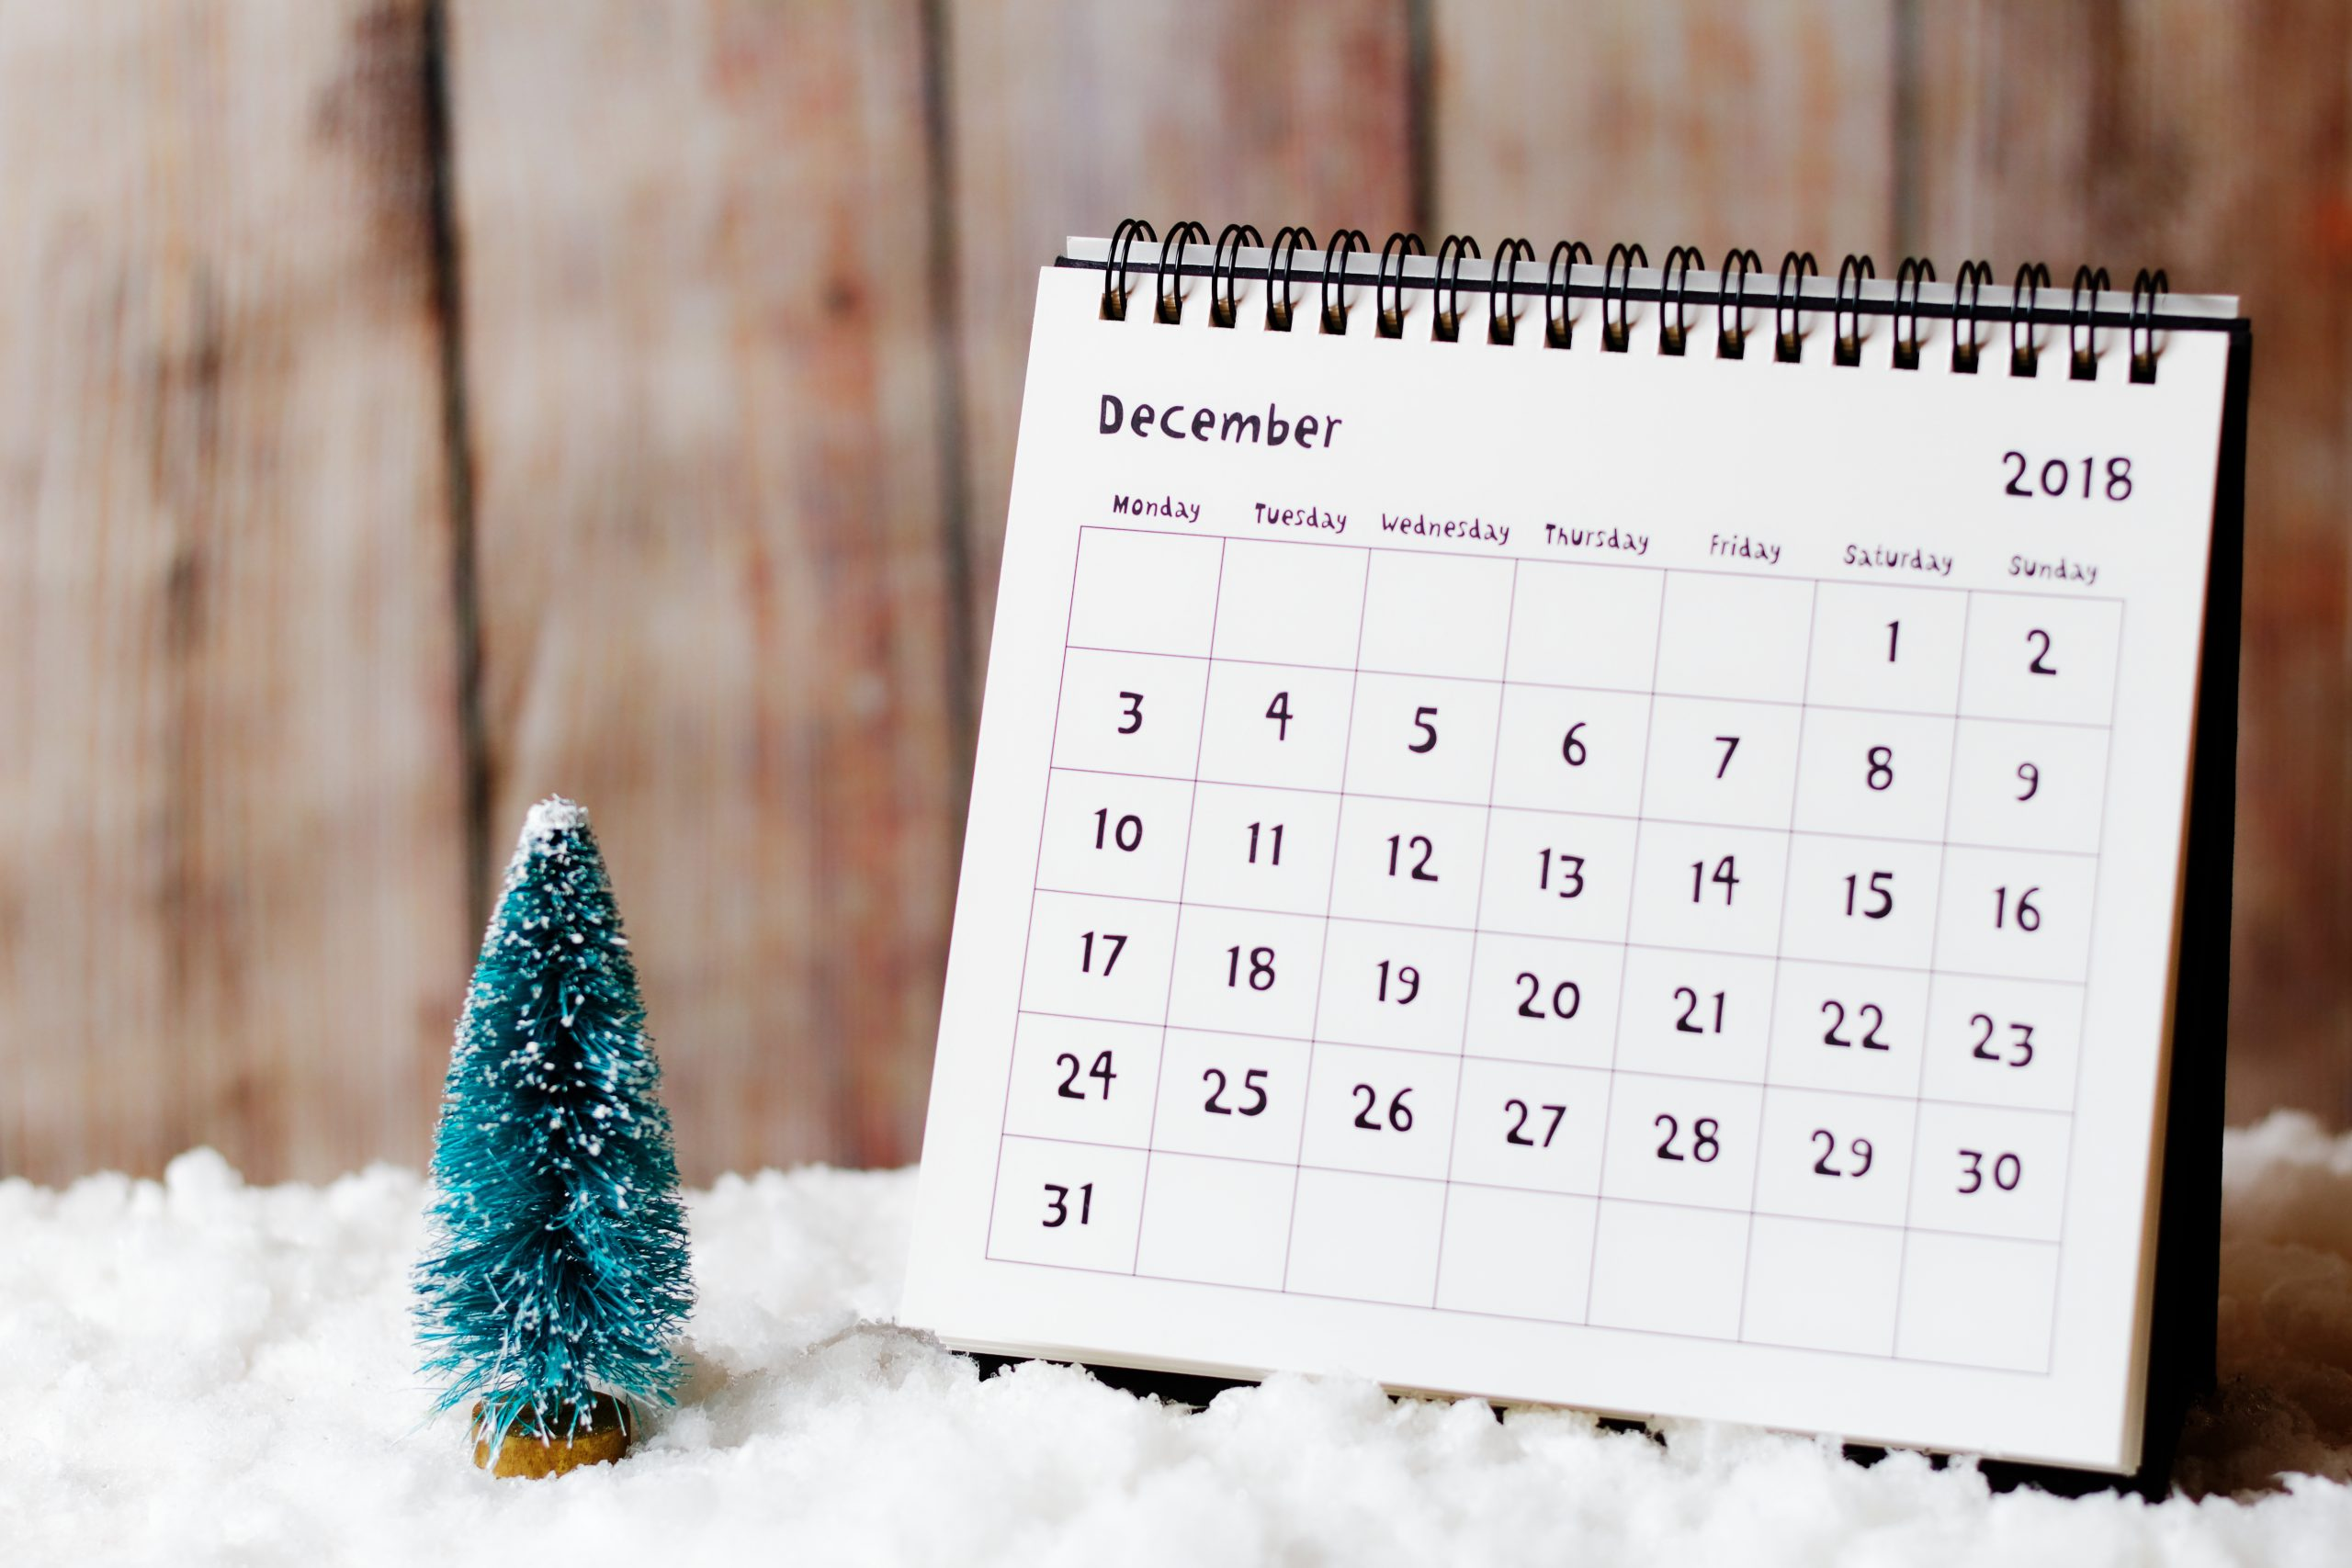 December 2018 calendar on the snow and little Christmas tree decoration. Wooden wall in the background